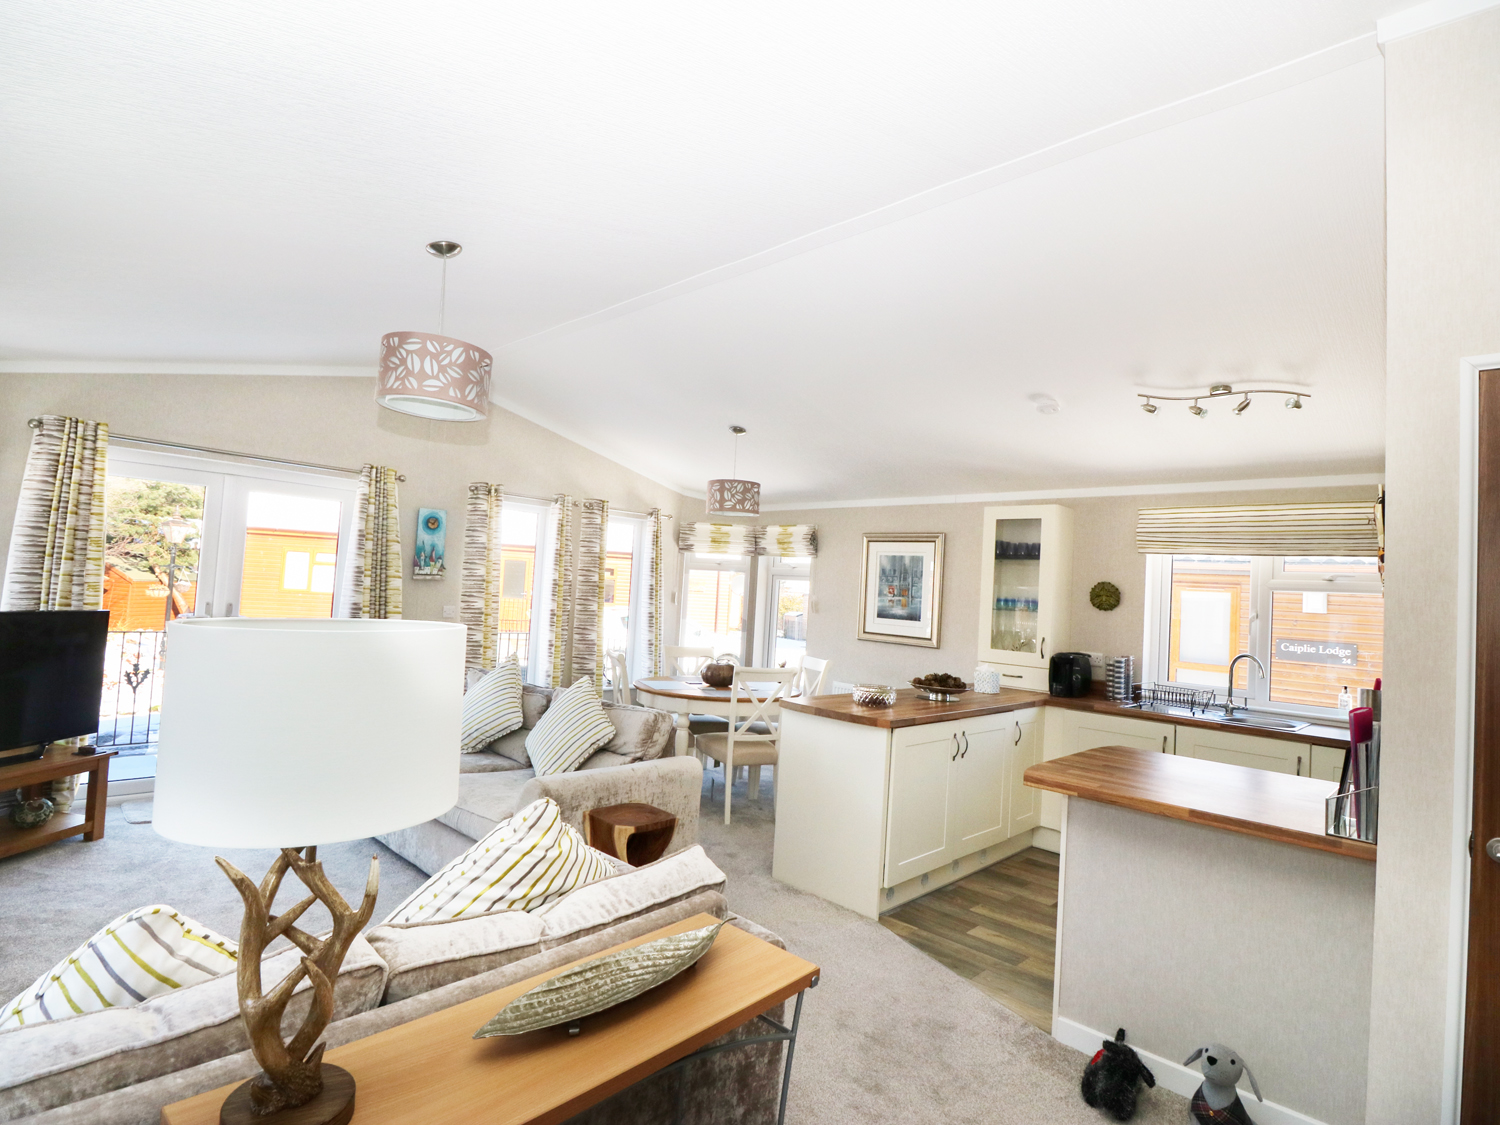 23 Struthan Beag, Perth and Kinross